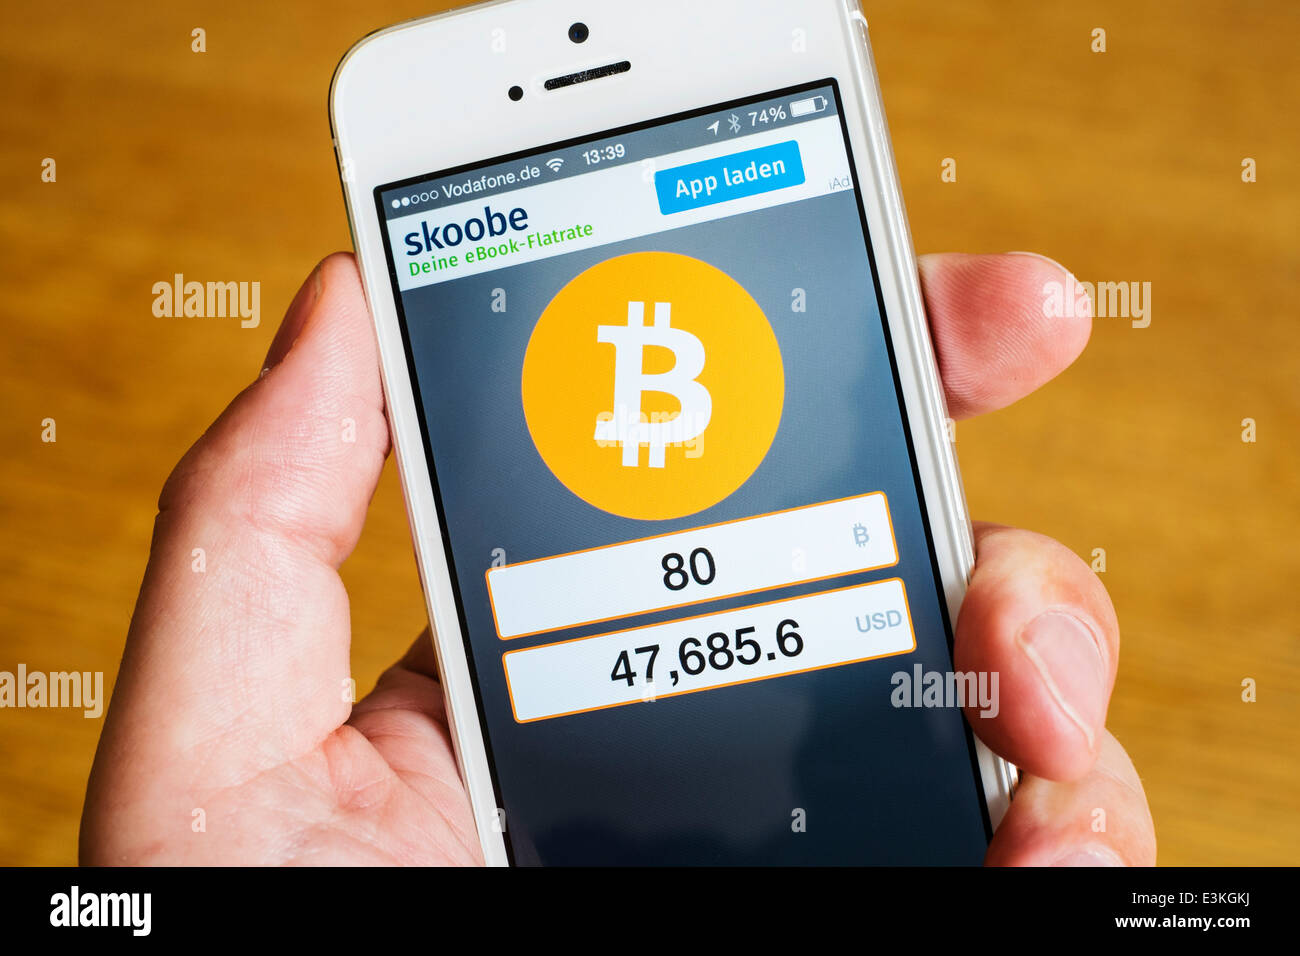 Detail of Bitcoin currency conversion app on iPhone smart phone